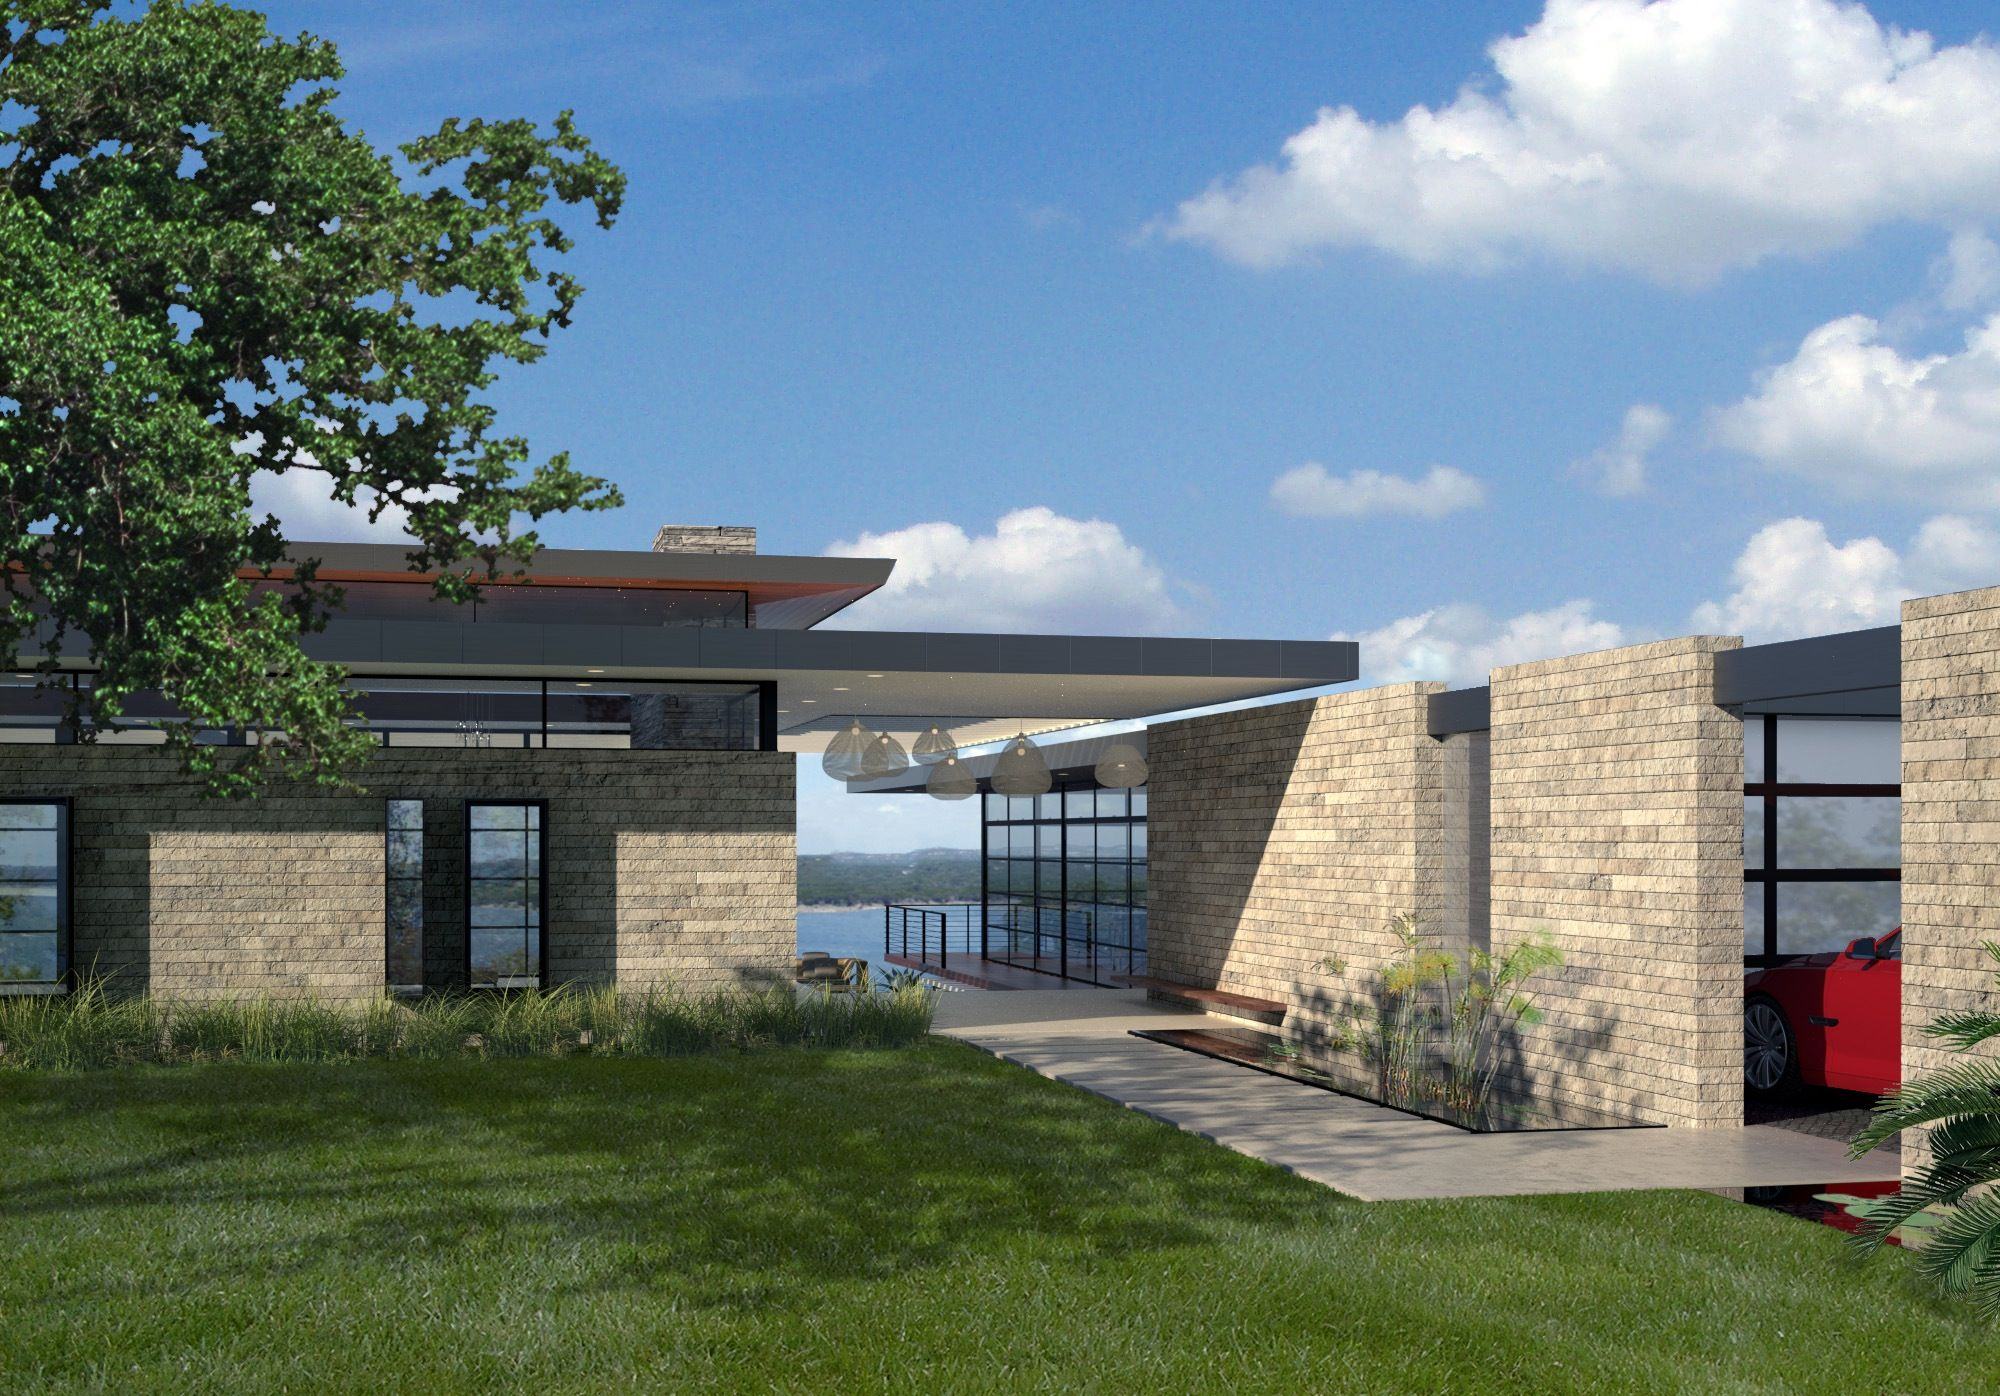 Bluff House: Design Coming Along Nicely. ‹ Foursquare Builders